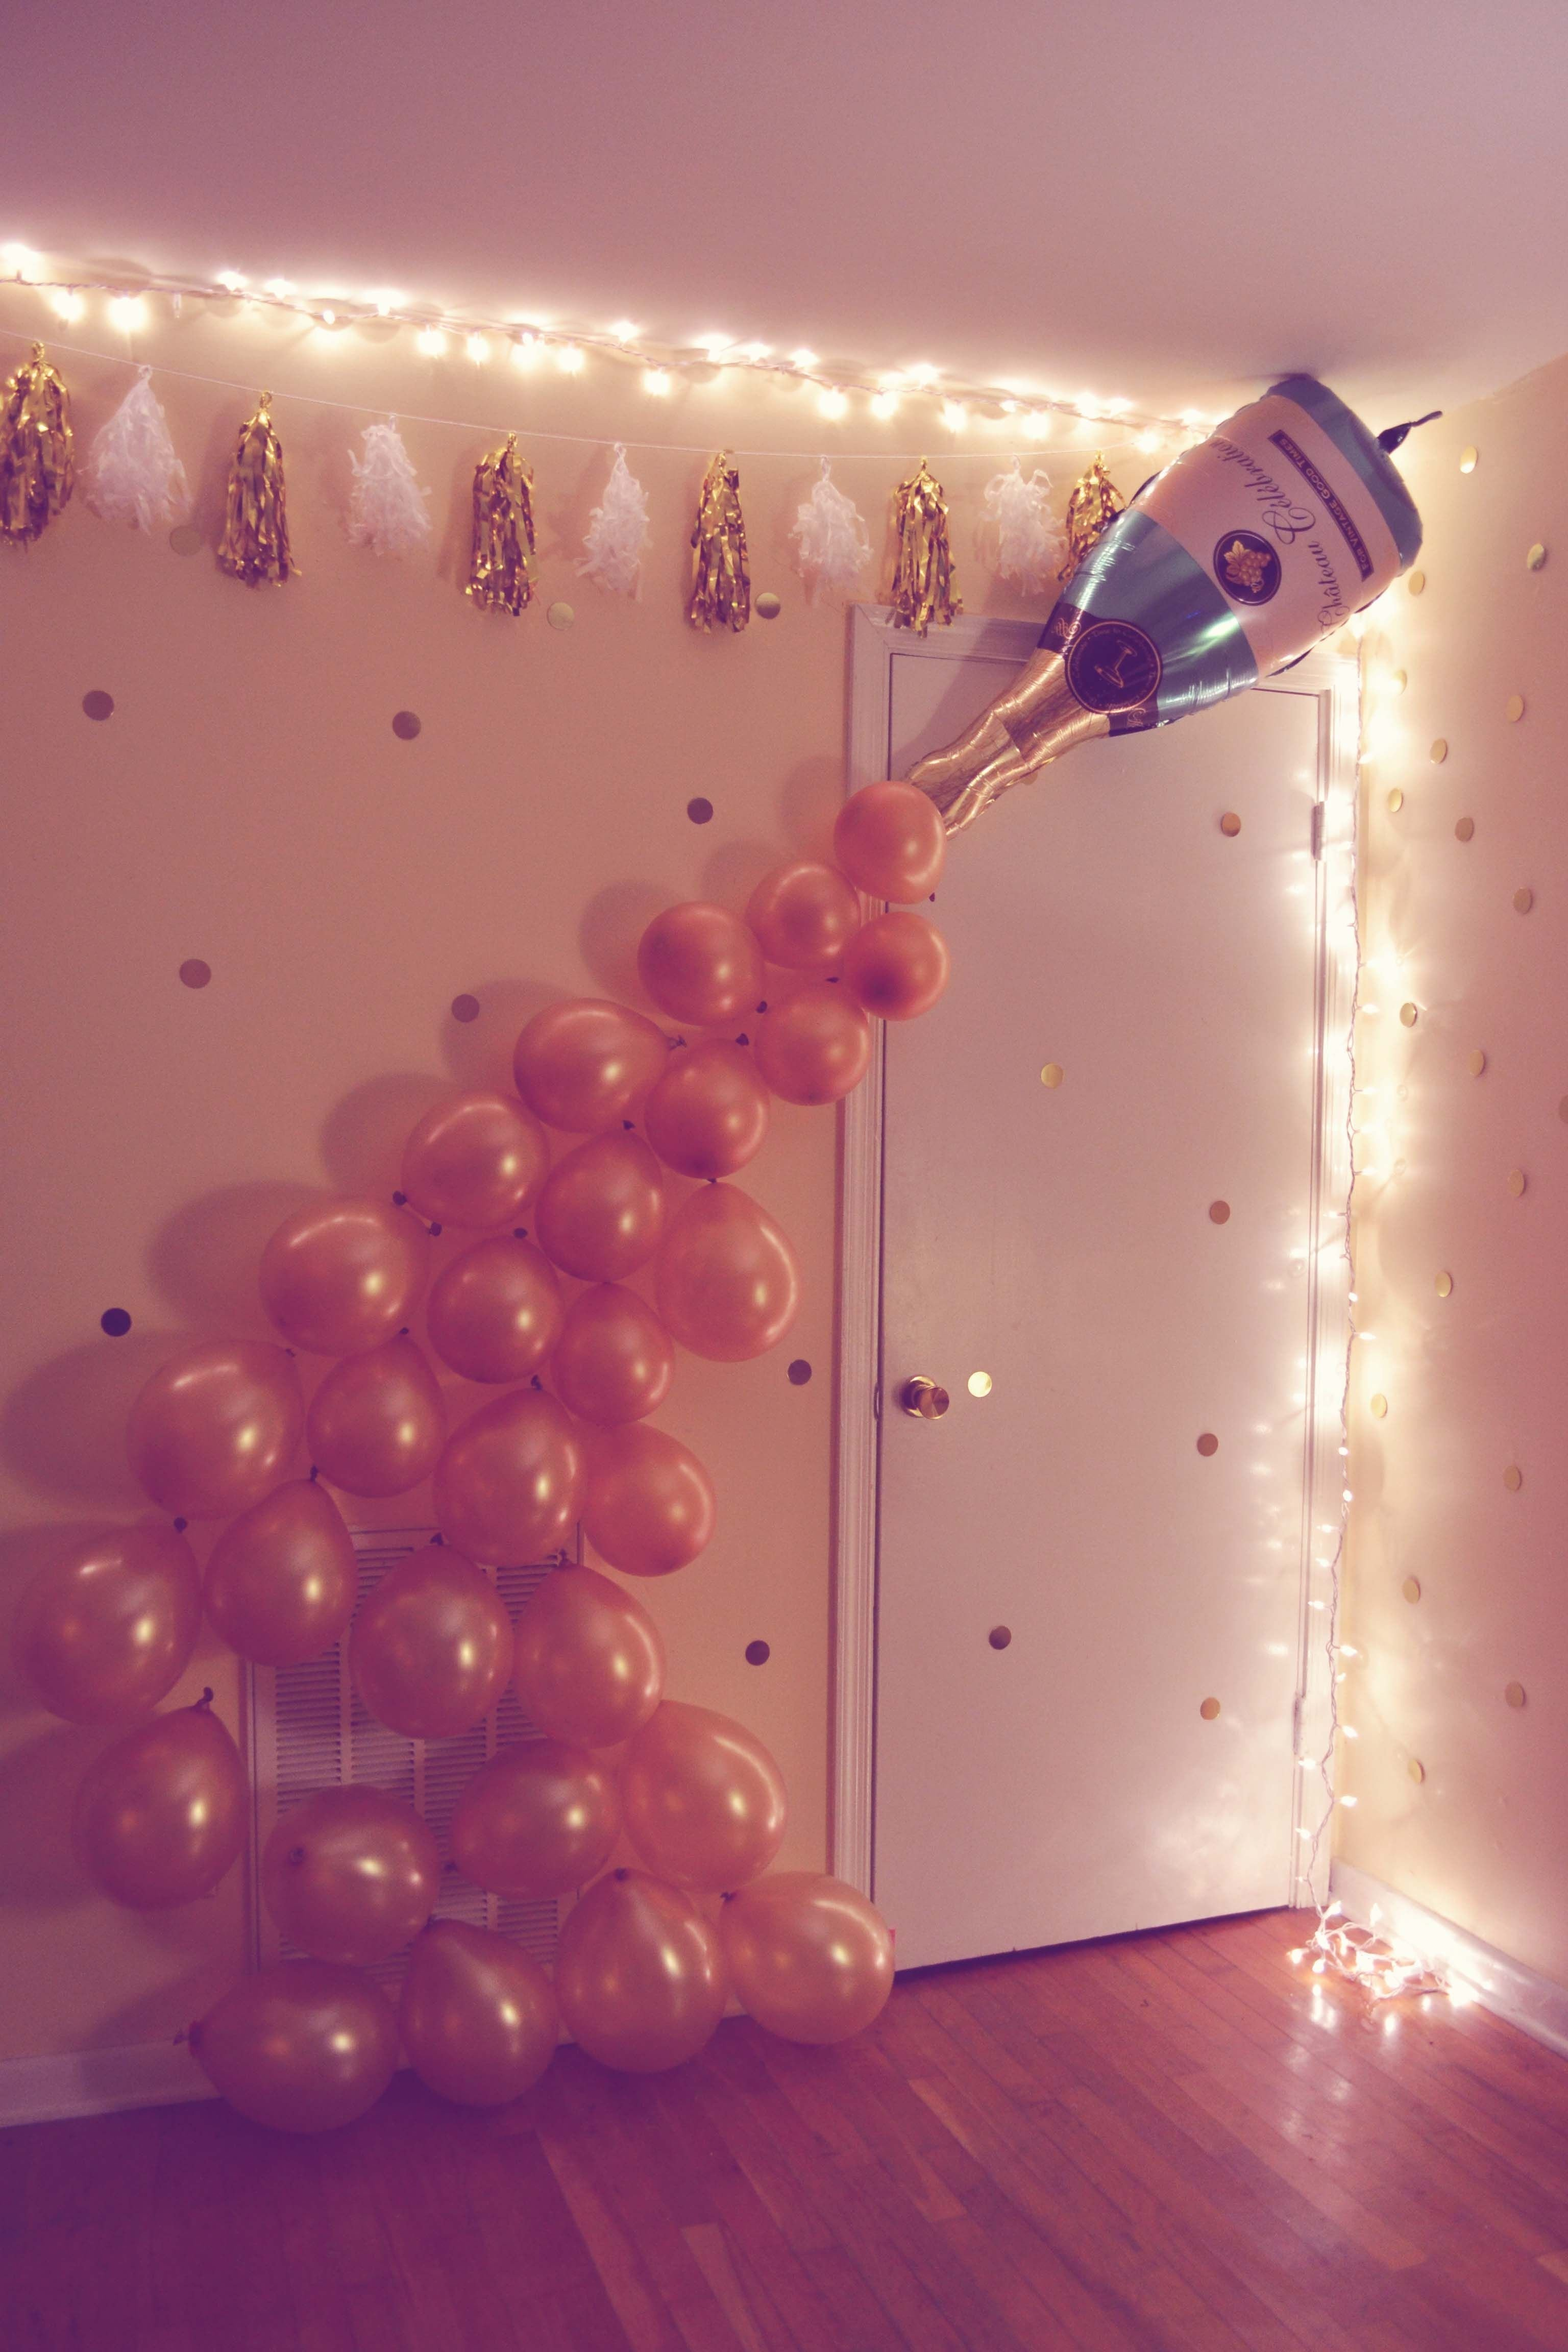 diy 21st birthday party | 21st birthday, 21st birthday parties and